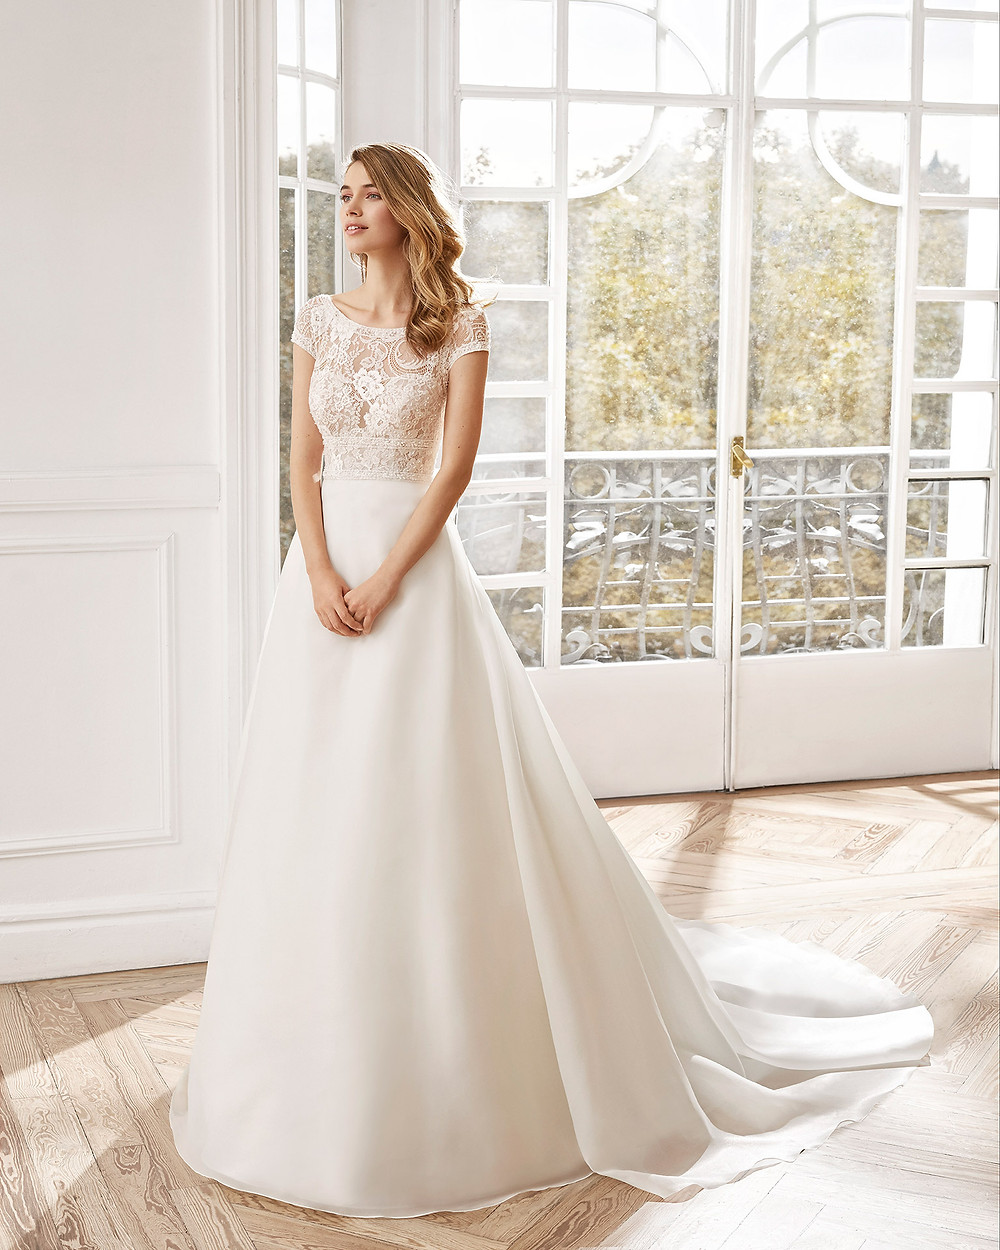 An Aire Barcelona 2020 lace and chiffon A-line wedding dress with cap sleeves and a high neckline